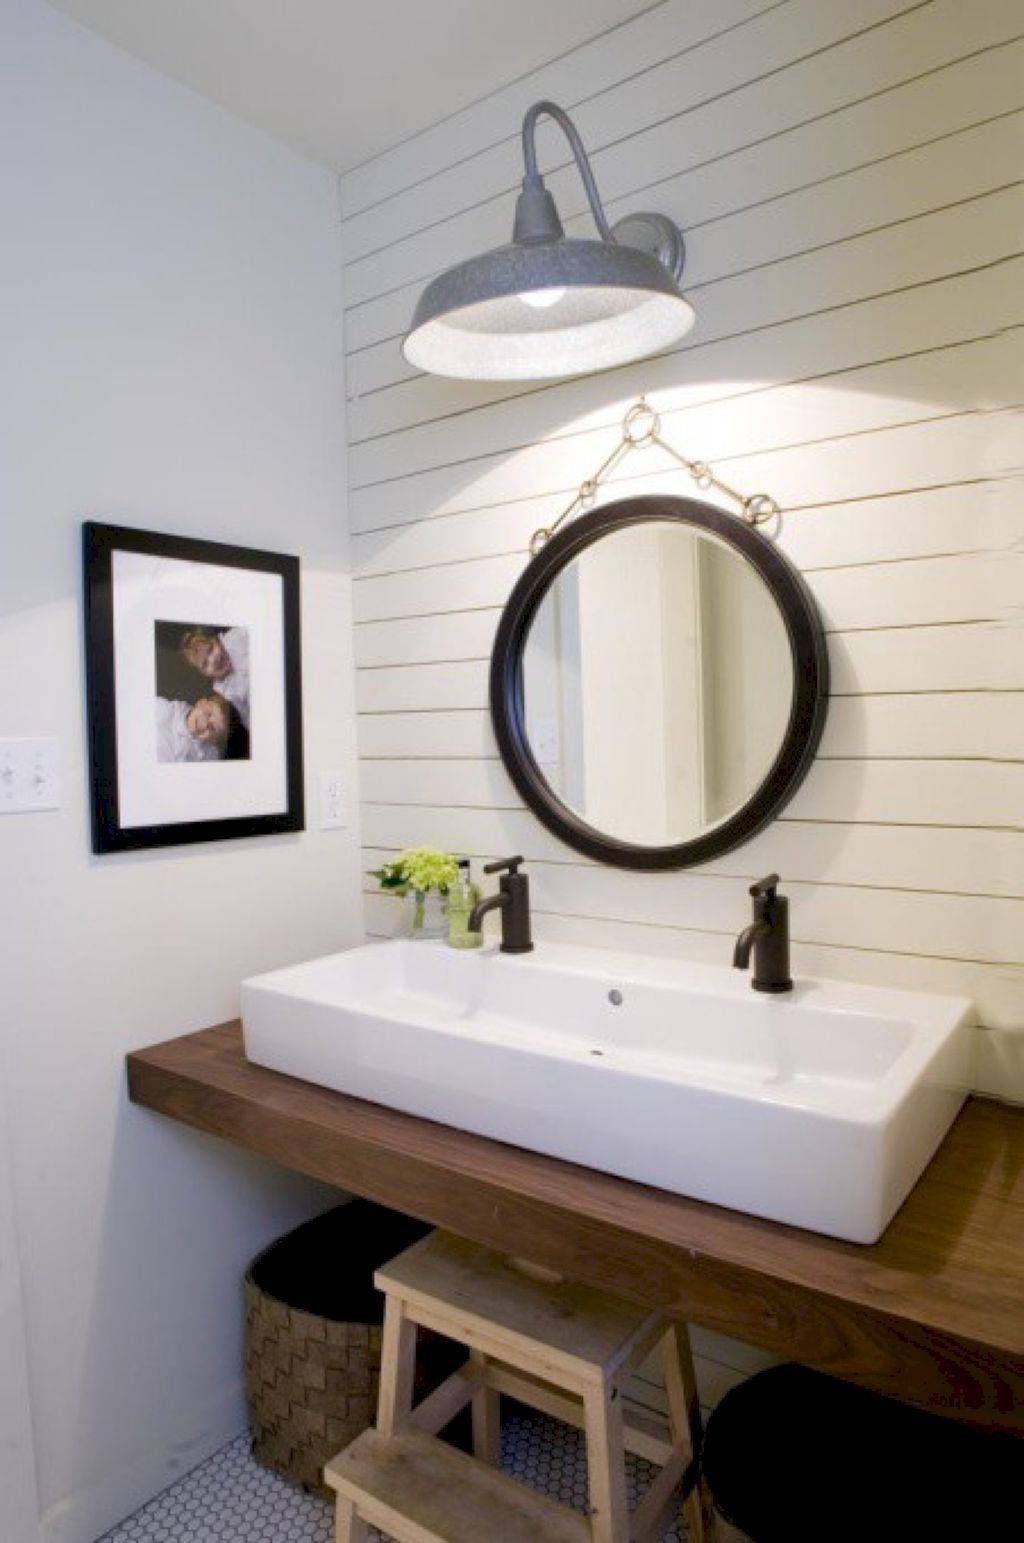 36 Awesome Small Farmhouse Bathroom Design Ideas | Bathroom designs ...